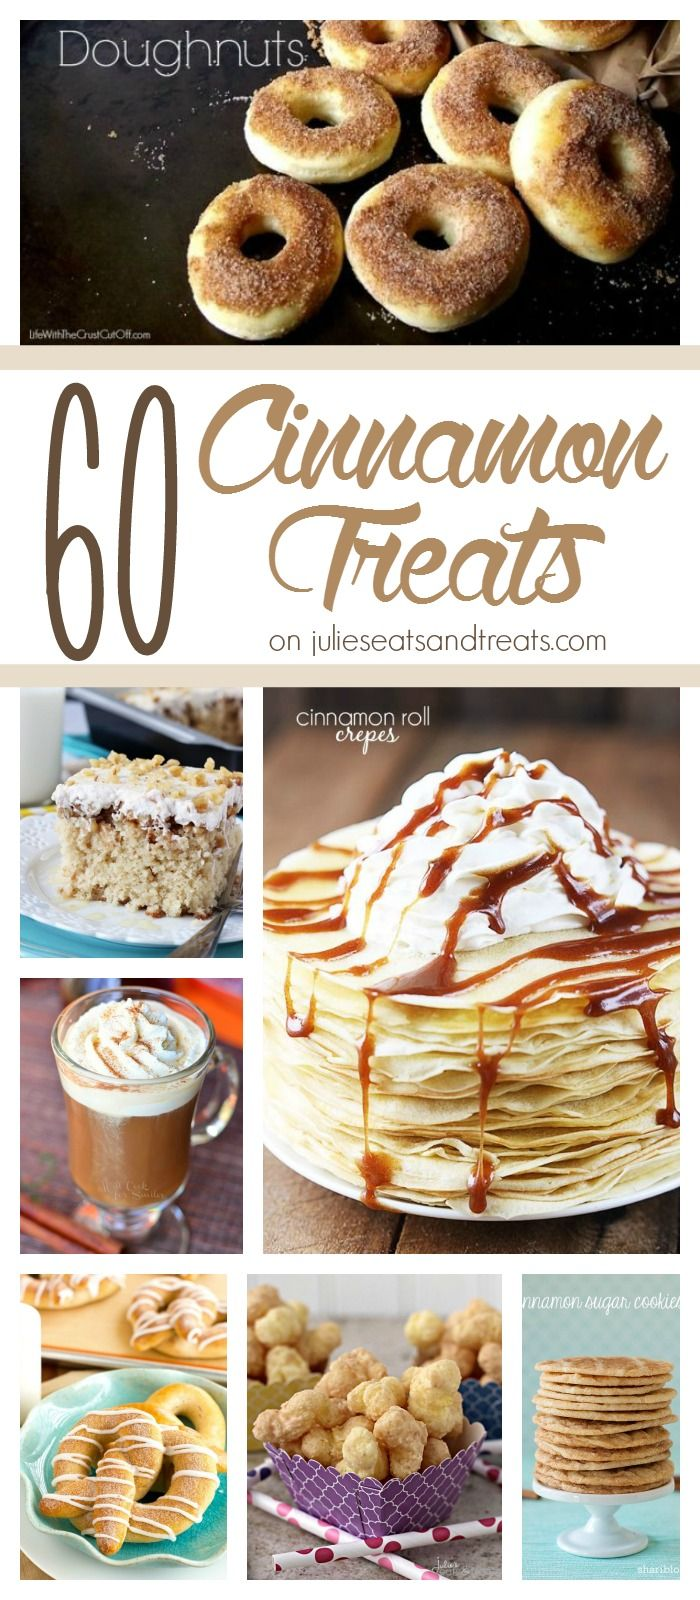 60 Recipes Using Cinnamon Rounded up for you in one place! If you are a cinnamon fanatic this is for you!